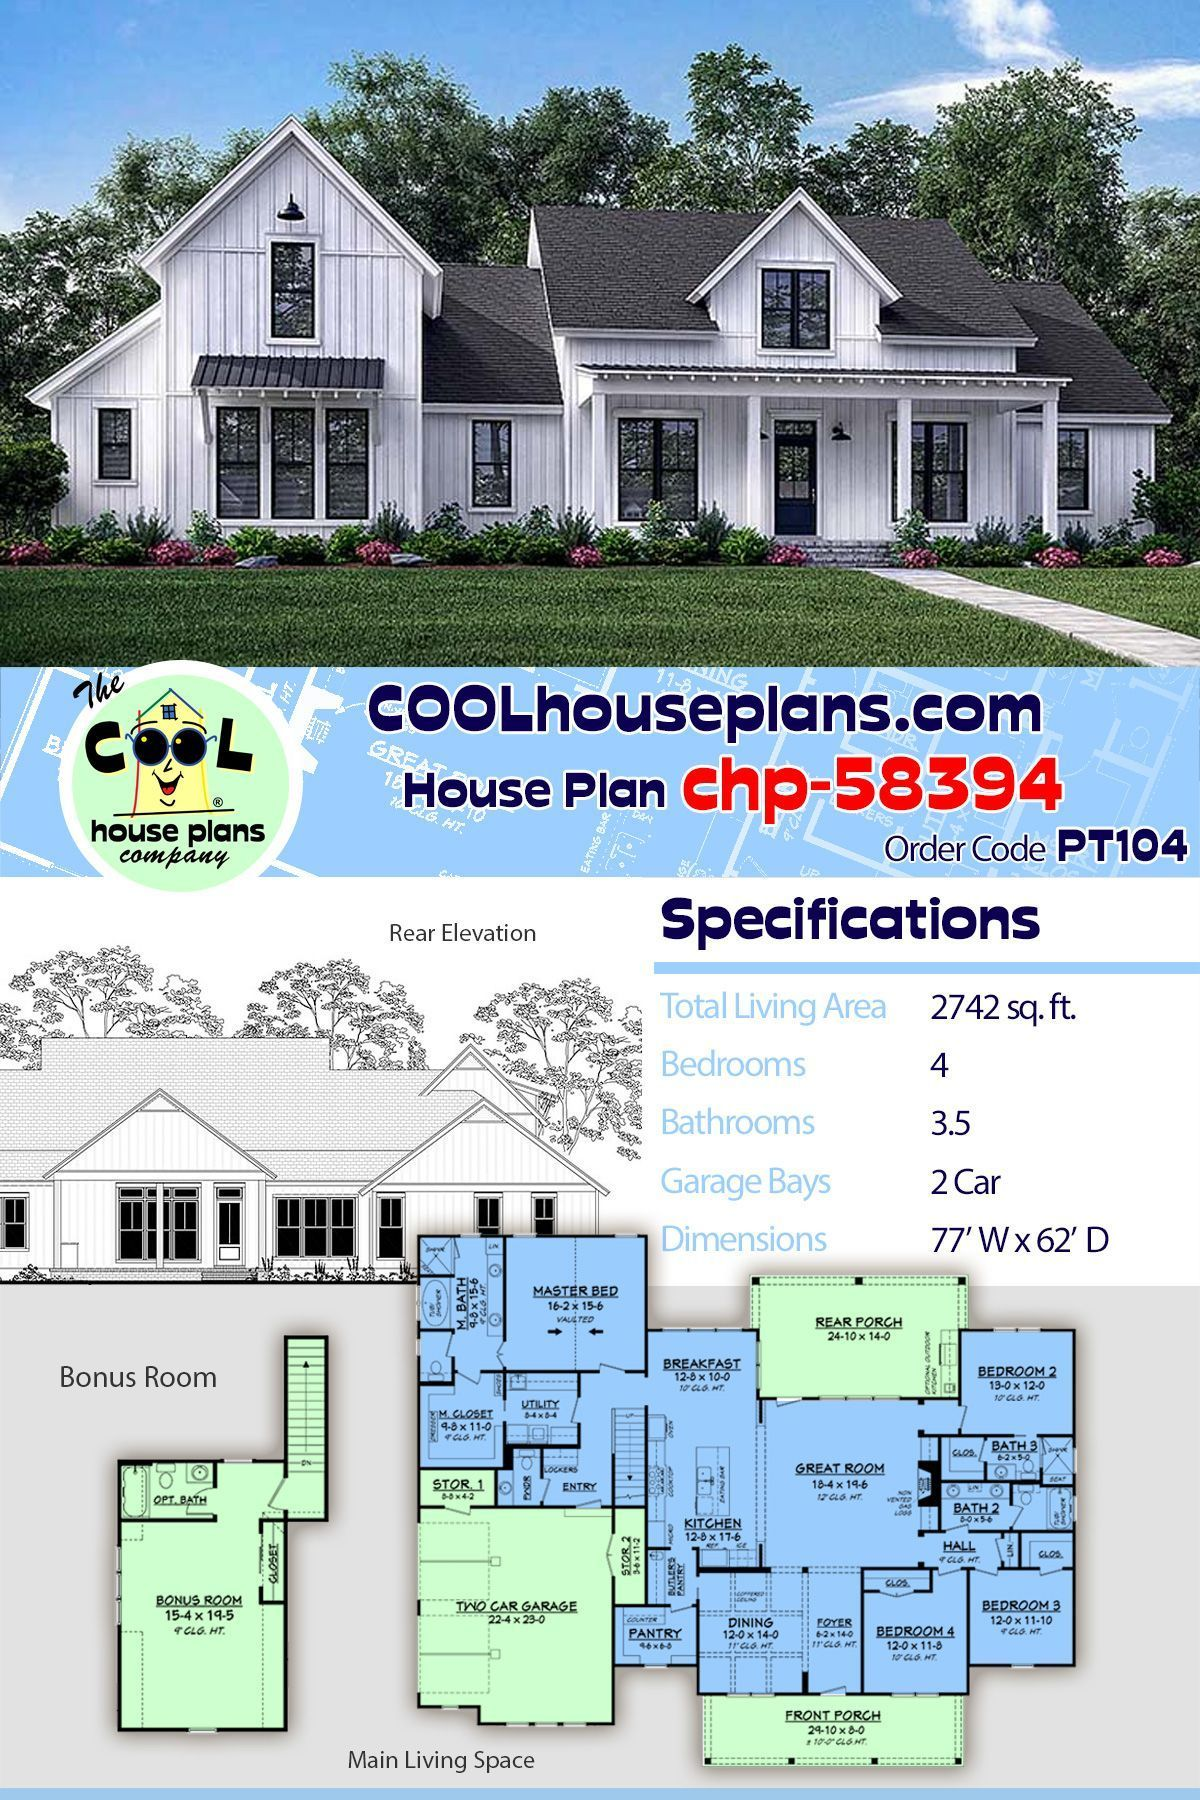 Farmhouse Home Plans With 4 Bedrooms At Cool House Plans This Modern Far Farmhouse Home Pl In 2020 House Plans Farmhouse Best House Plans House Plans